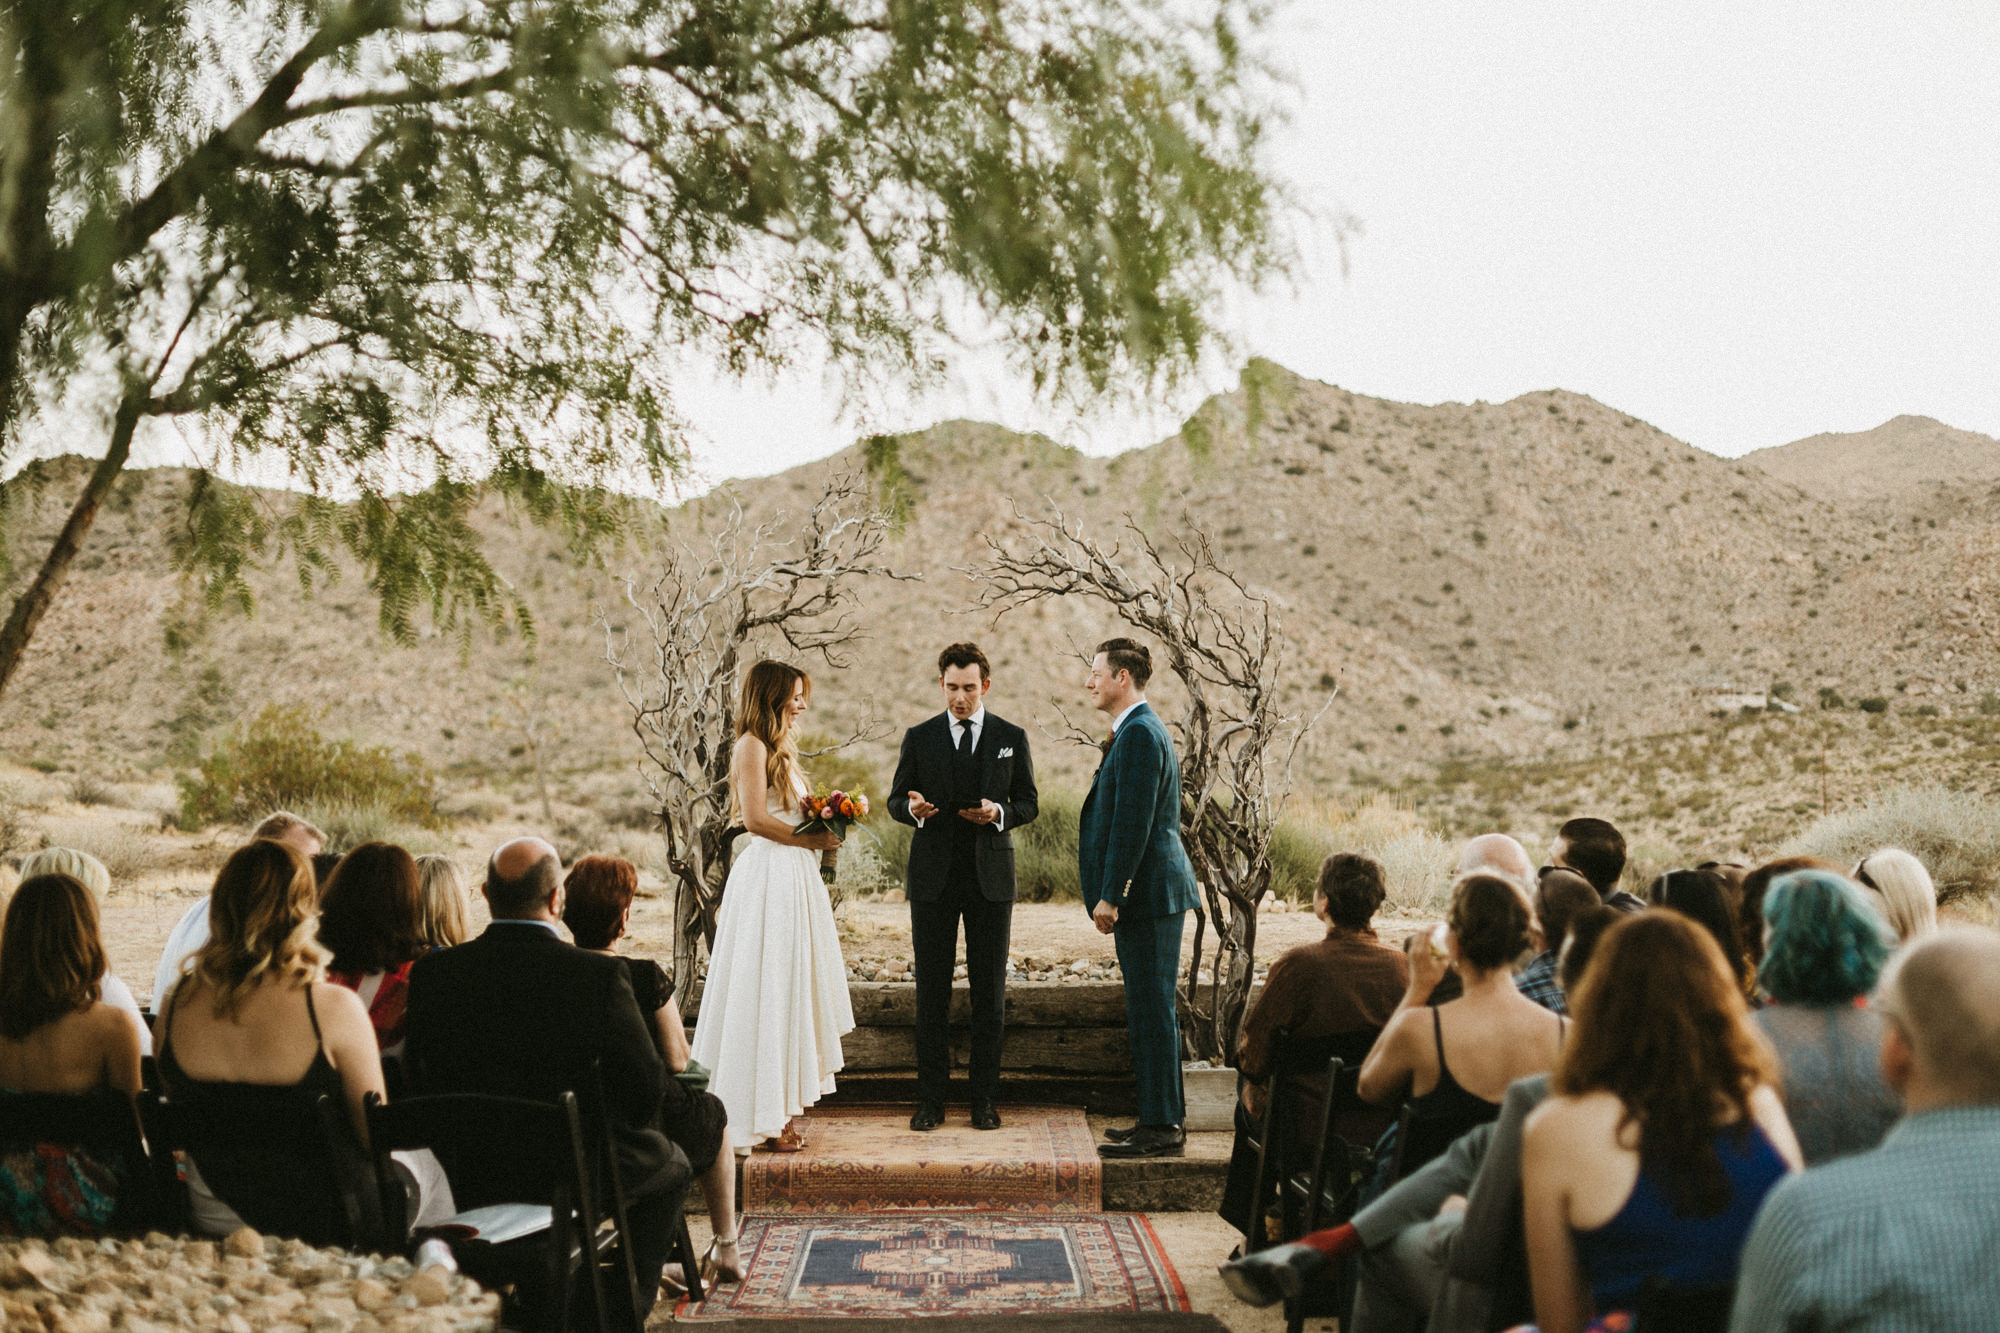 sacred_sands_joshua_tree_wedding-60.jpg